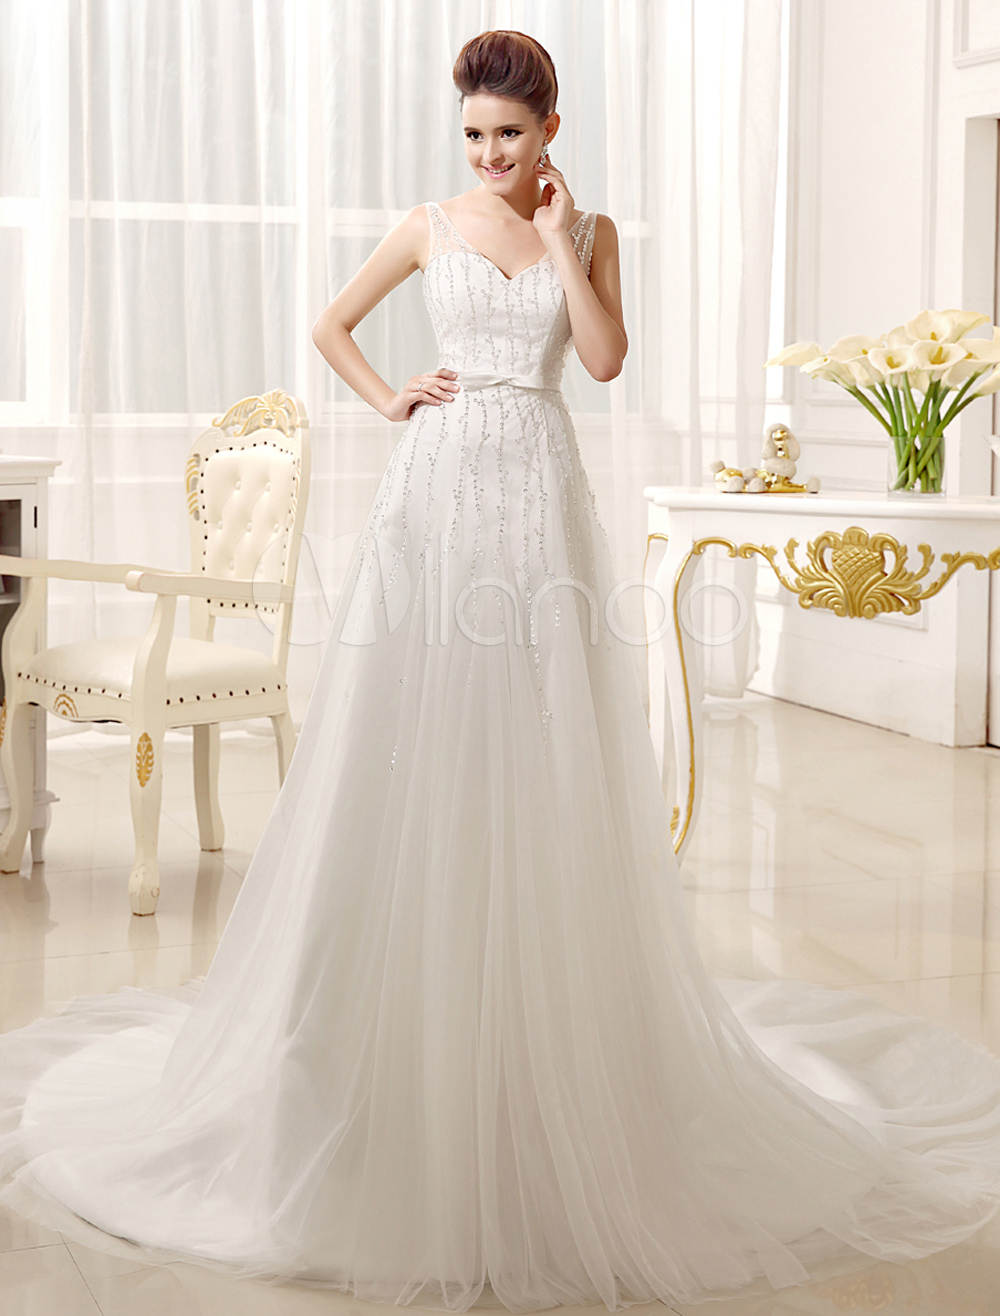 Brides Wedding Dress with V-Neck A-line Spaghetti Strap Beading